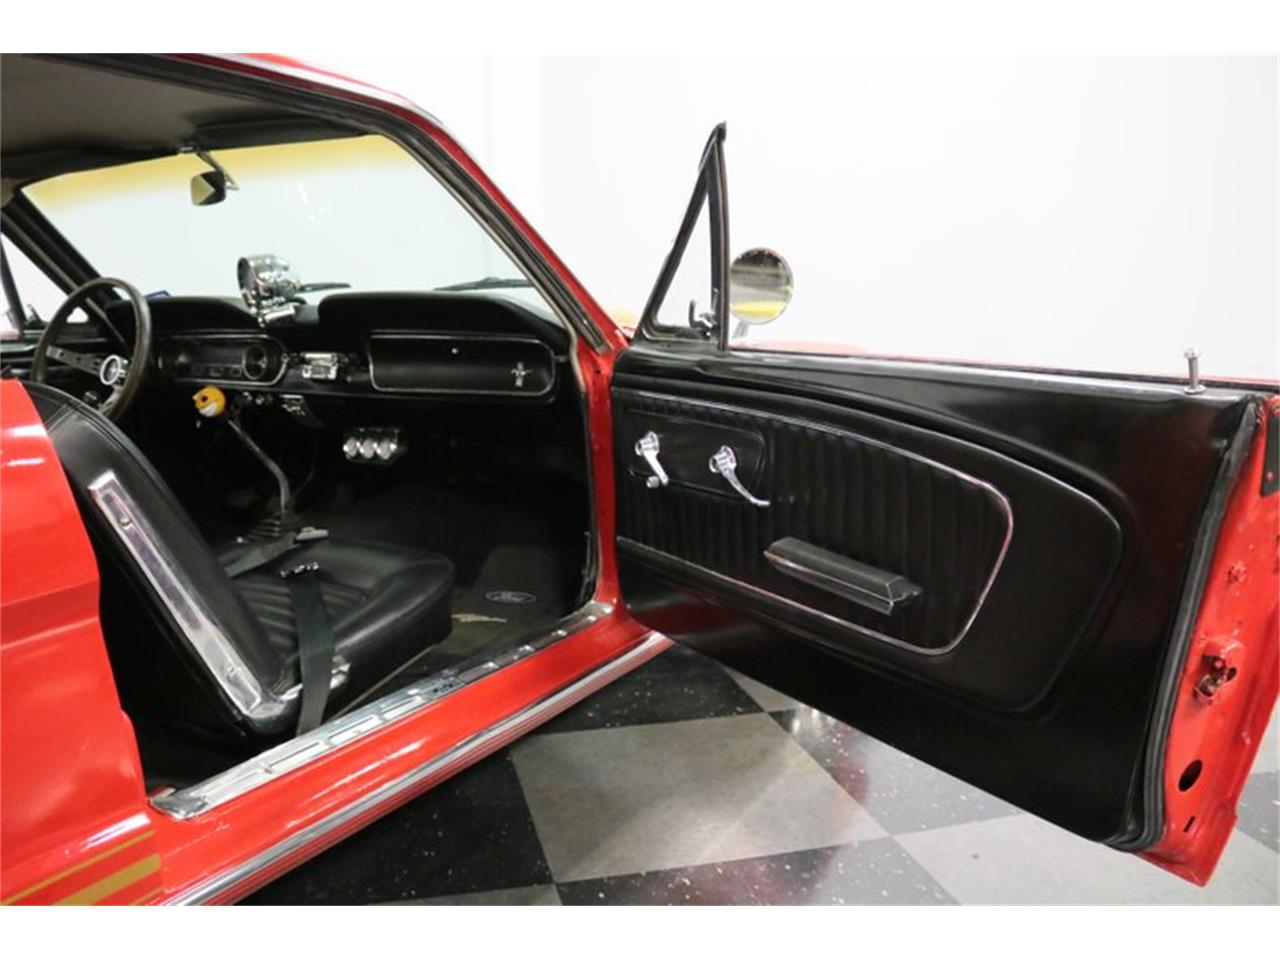 Ford Mustang V8 289 1965 prix tout compris